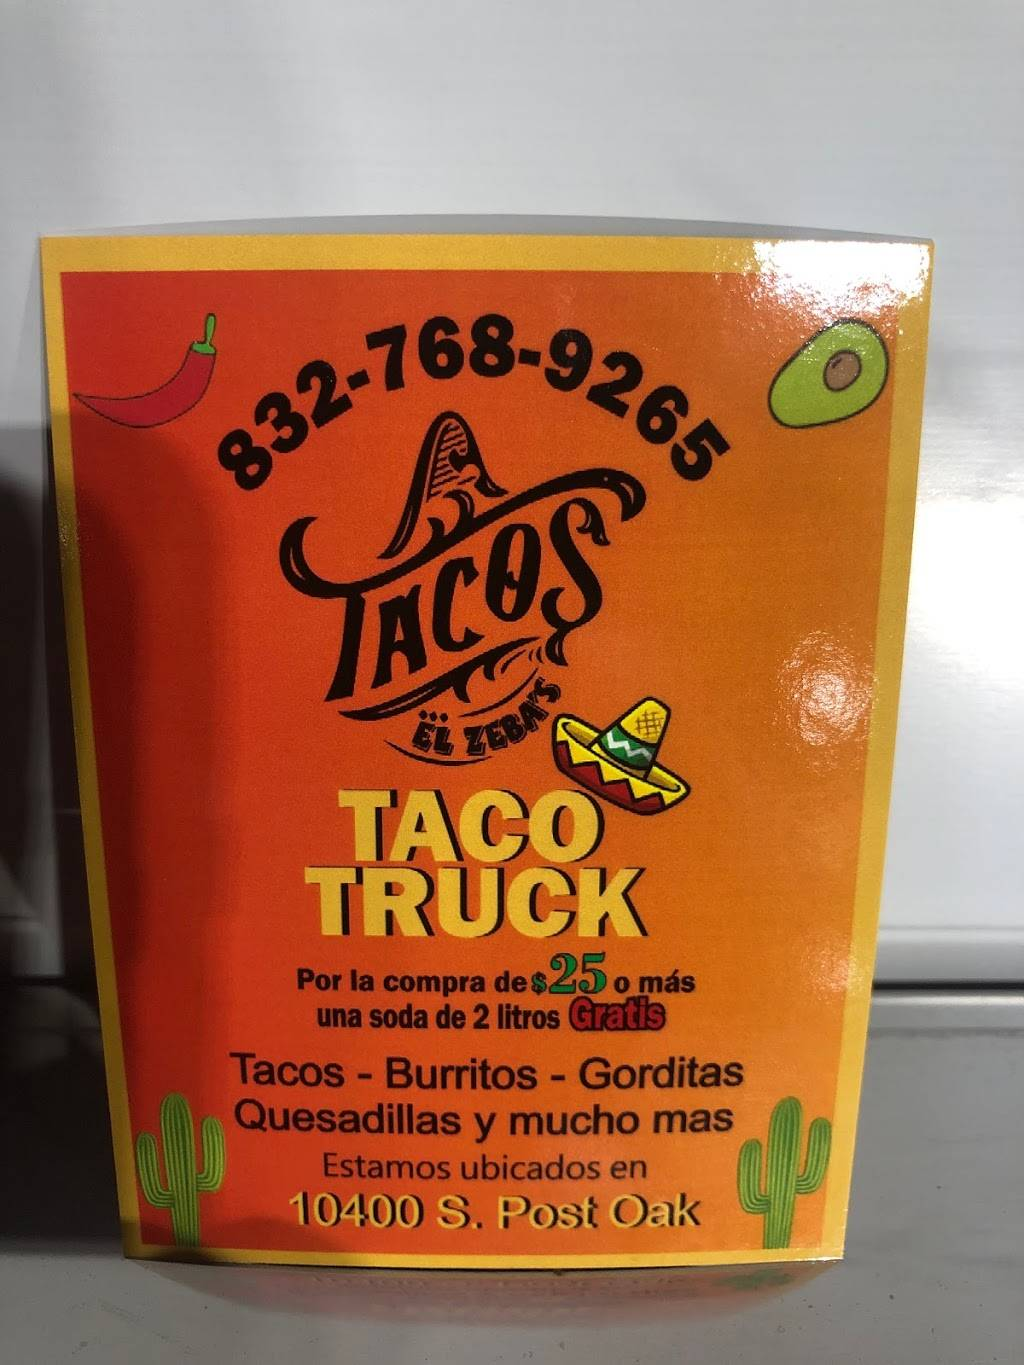 Tacos El Zebas | restaurant | 10350 S Post Oak Rd, Houston, TX 77035, USA | 8327689265 OR +1 832-768-9265